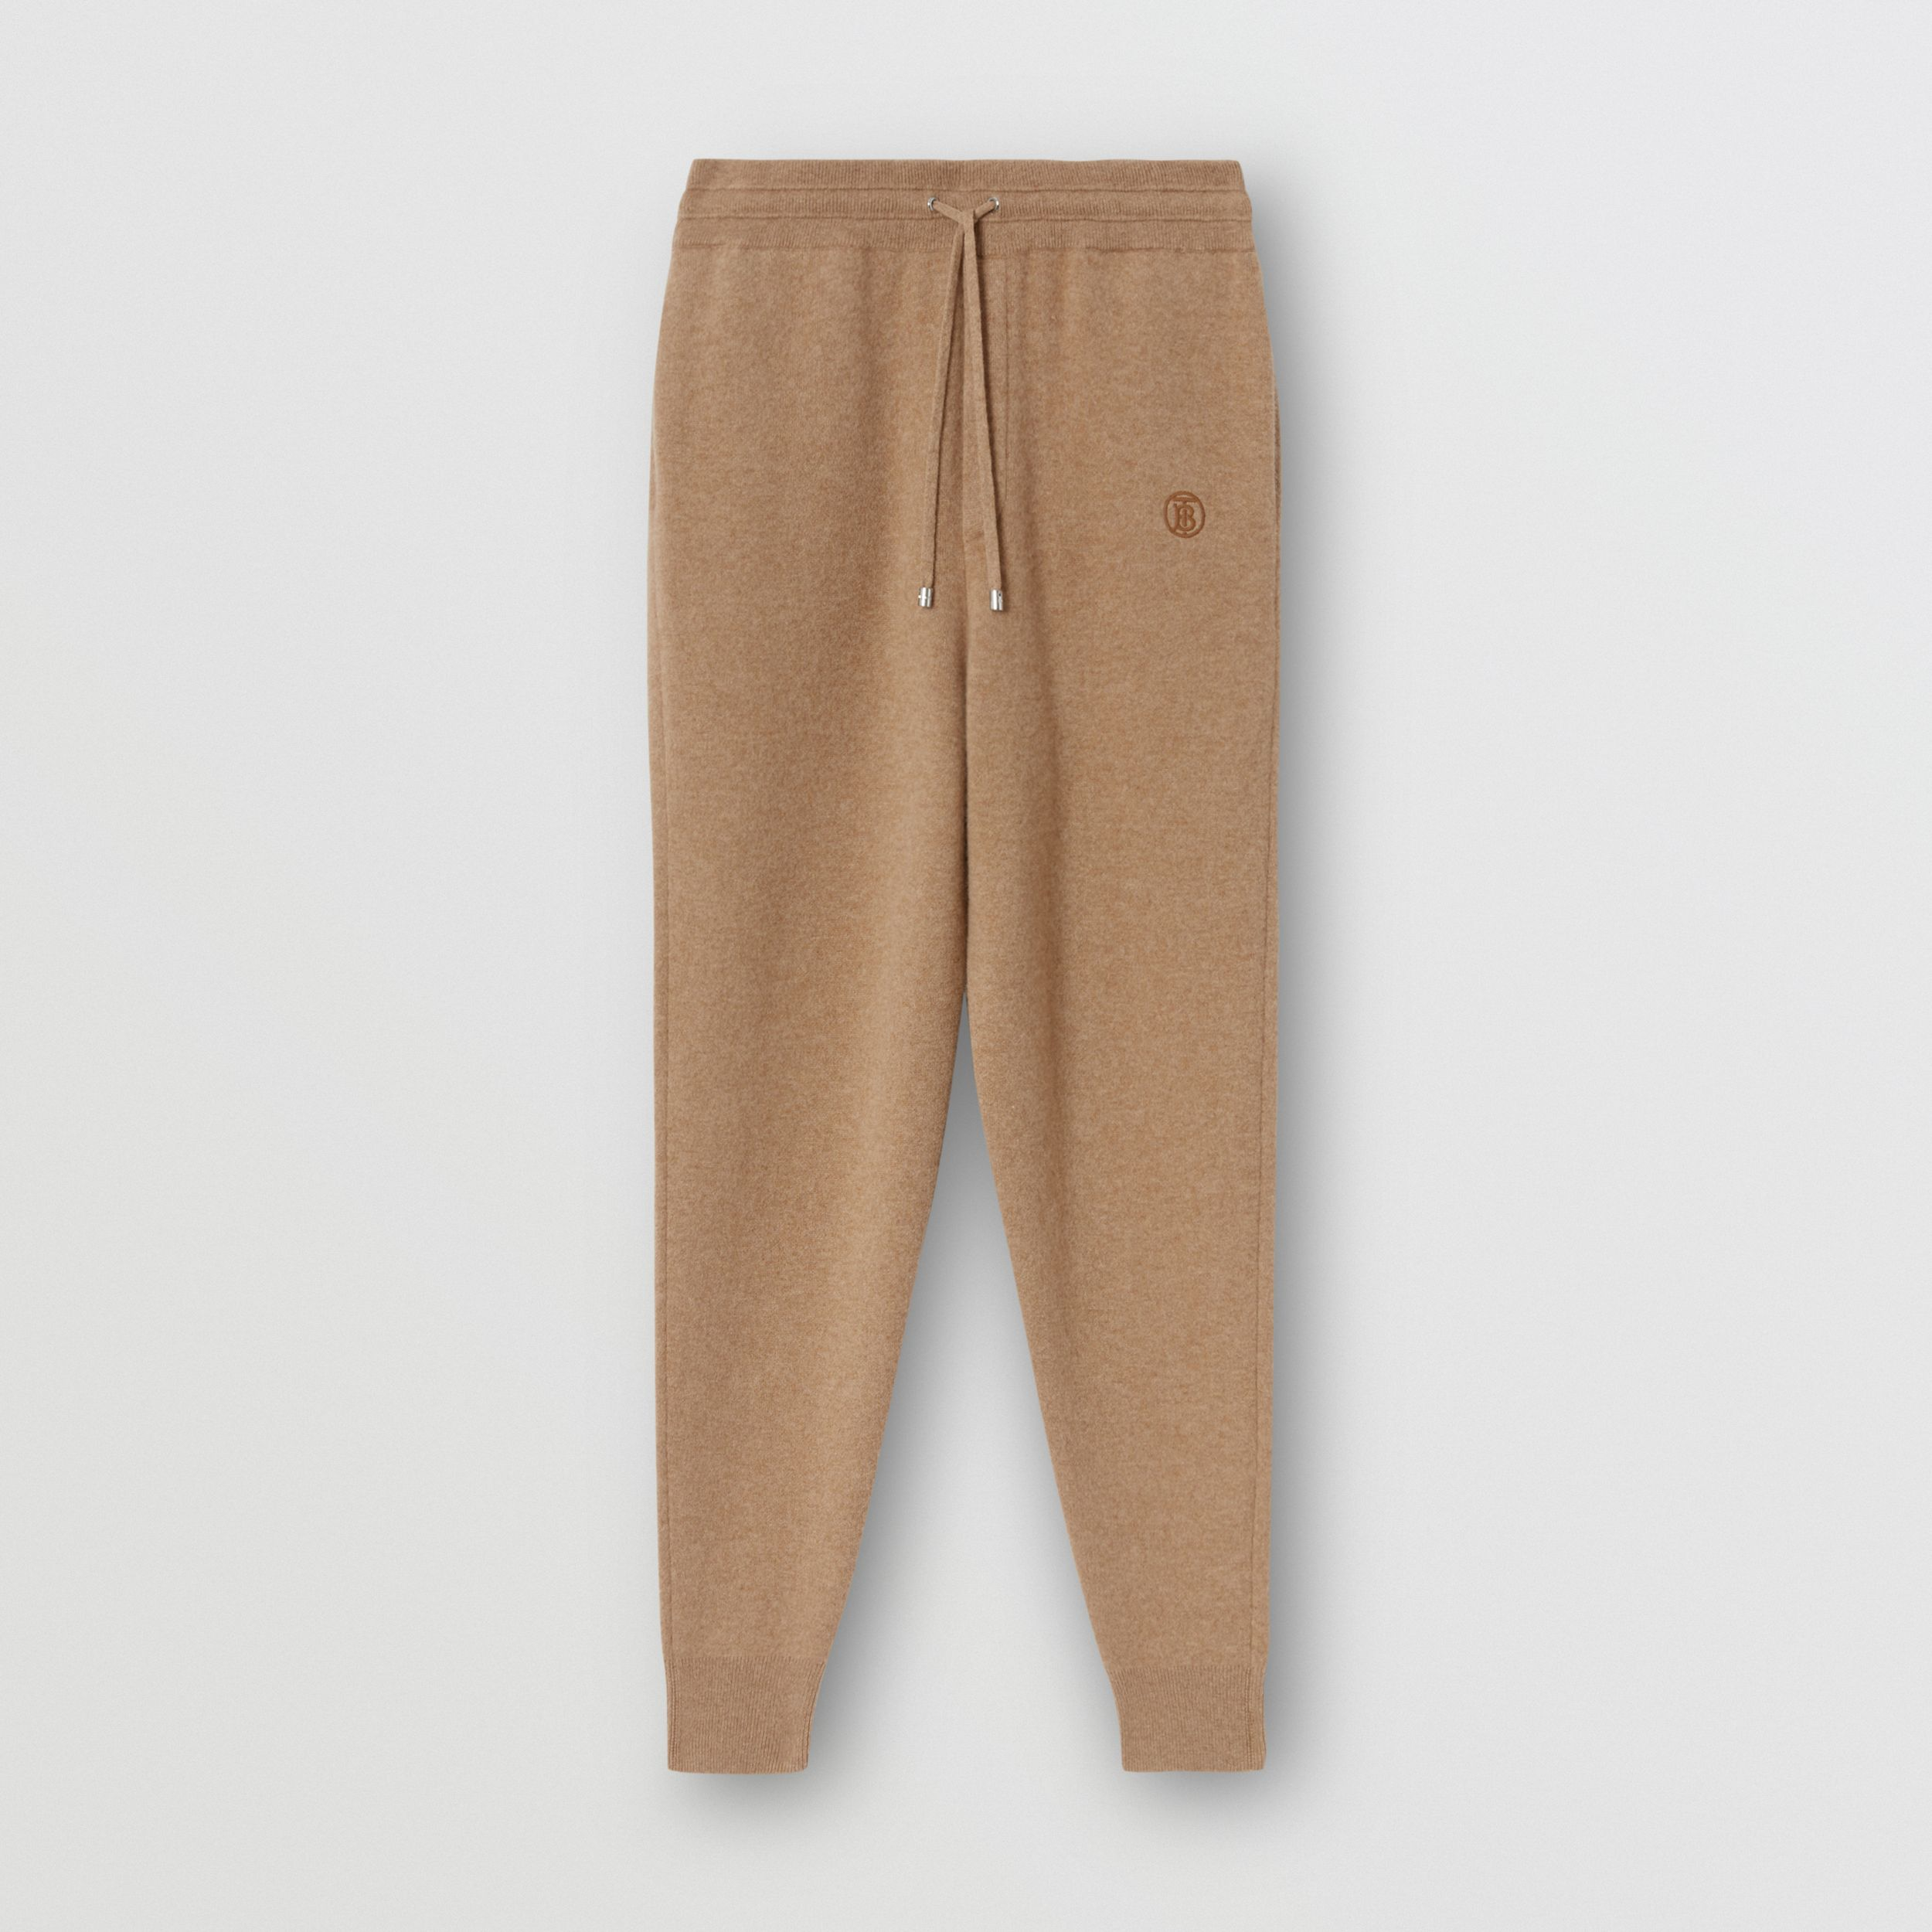 Monogram Motif Cashmere Blend Trackpants in Pale Coffee - Men | Burberry Canada - 2